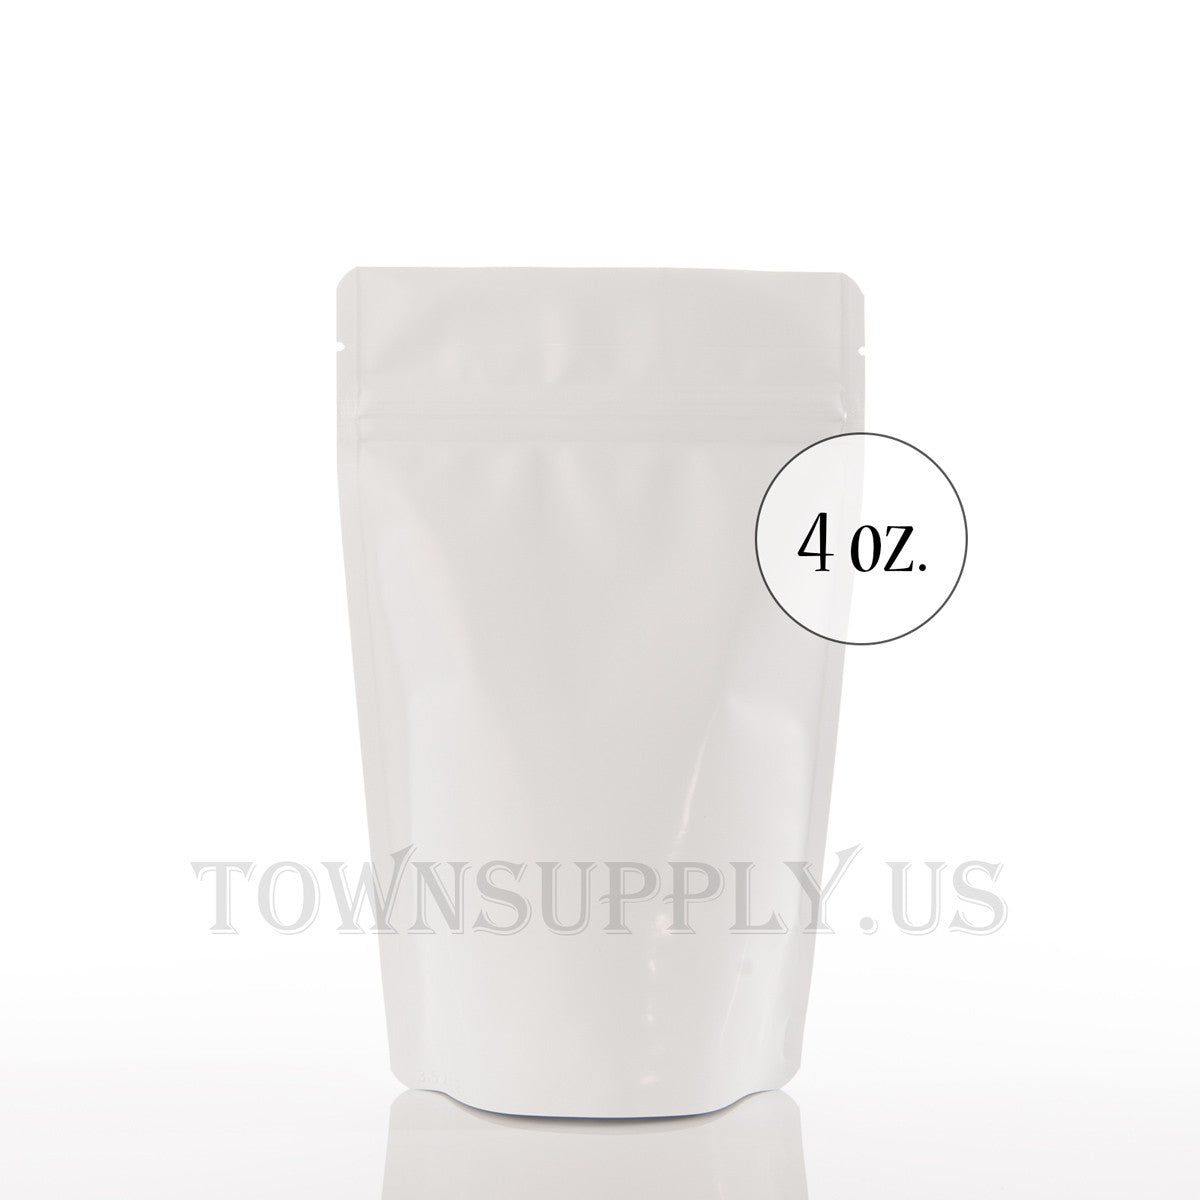 matte white resealable stand up pouch, 4 oz. bags - Town Supply